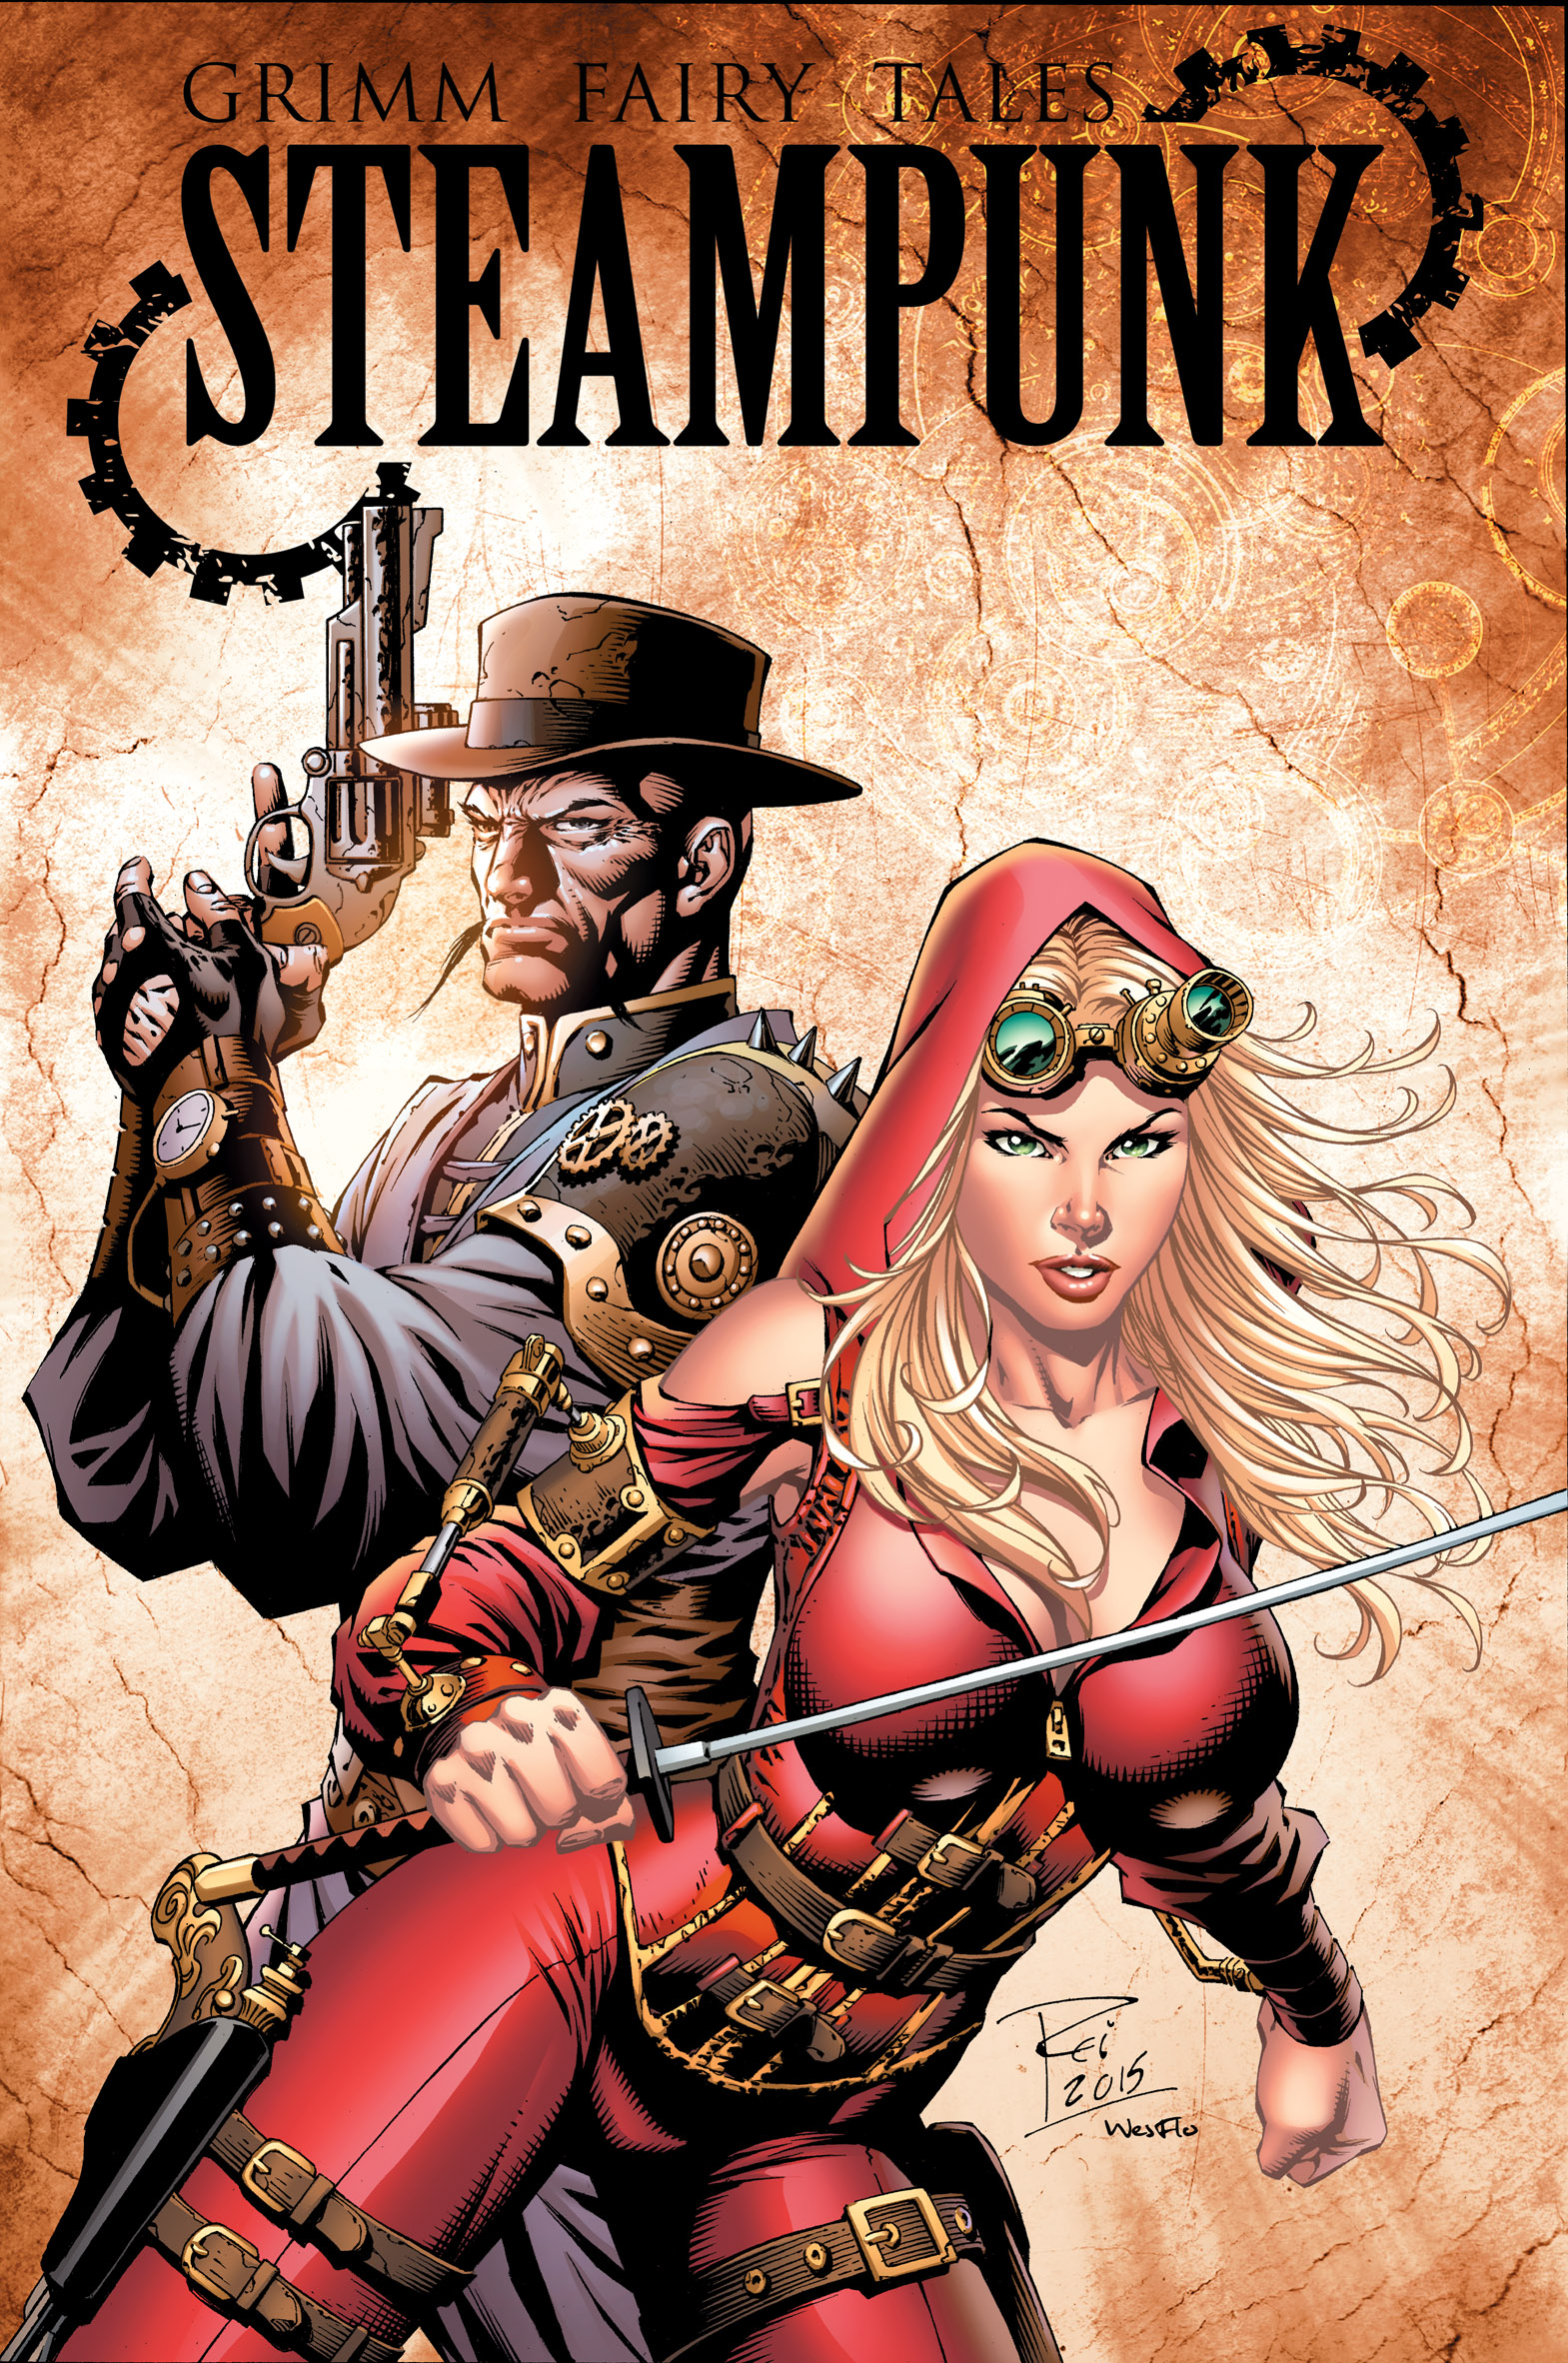 Grimm Fairy Tales: Steampunk—A New Alternate Reality Two-Part Mini-Series From Zenescope Entertainment